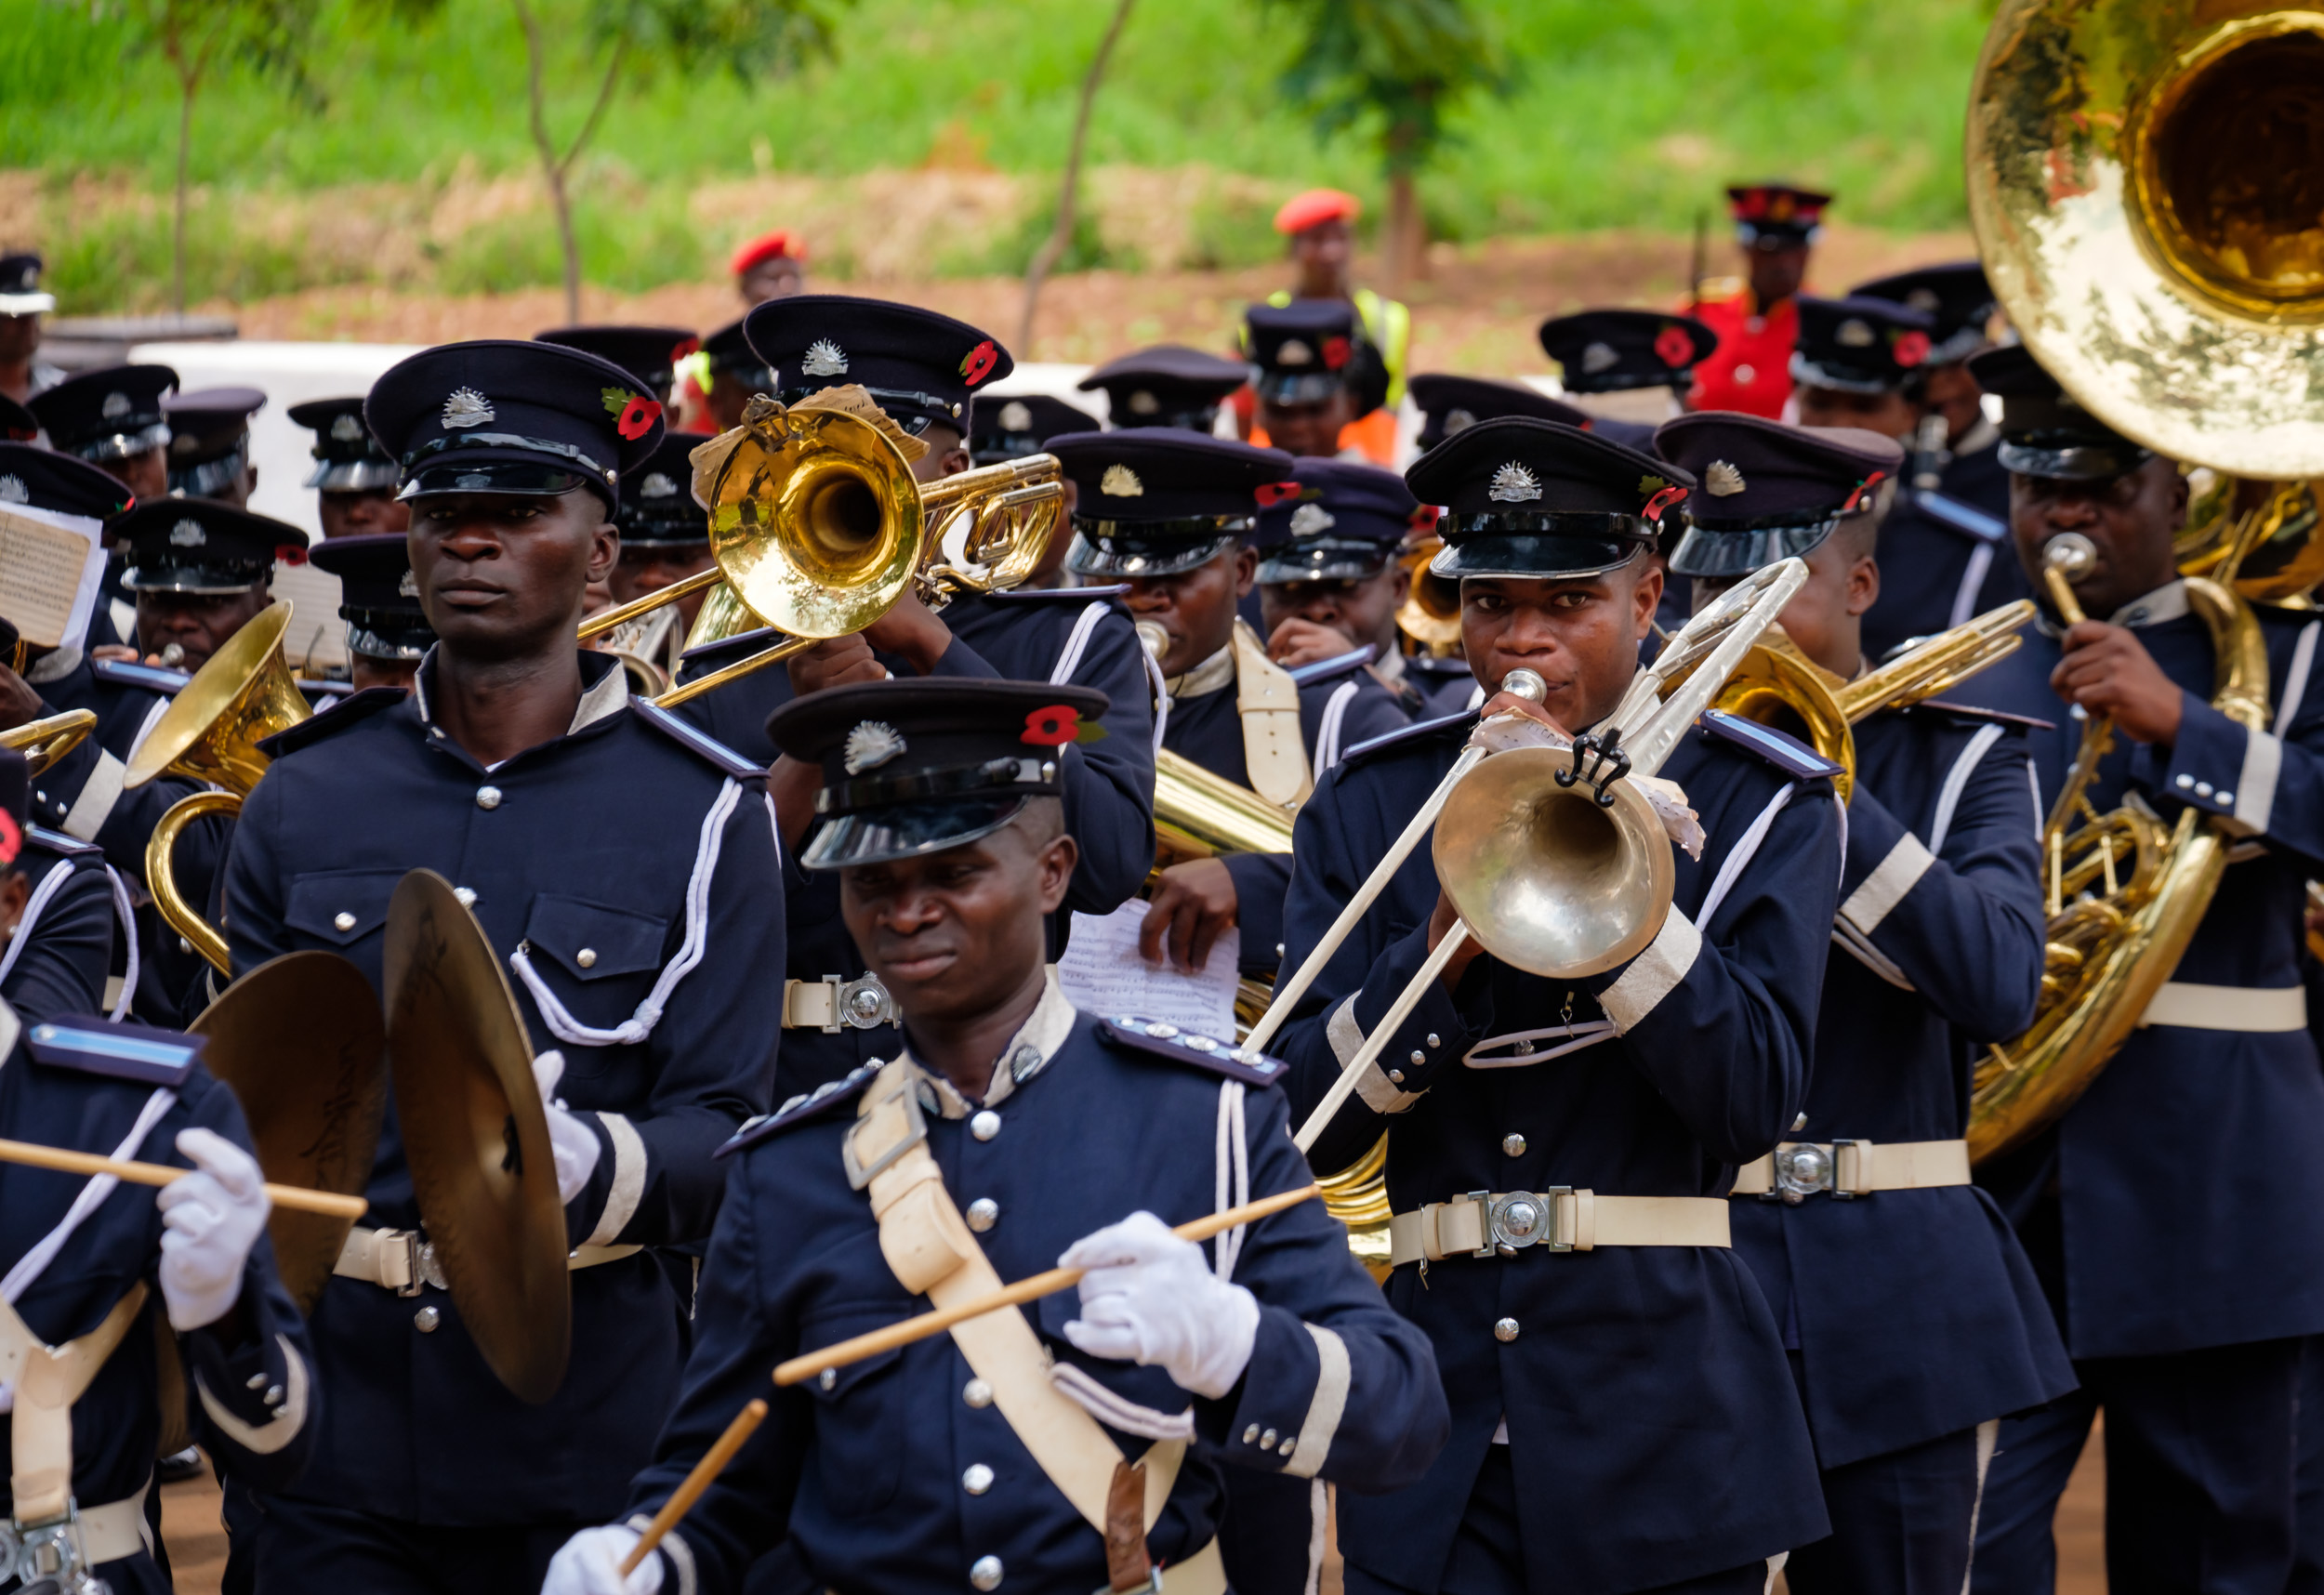 The Zomba Police Honor Guard led the parade